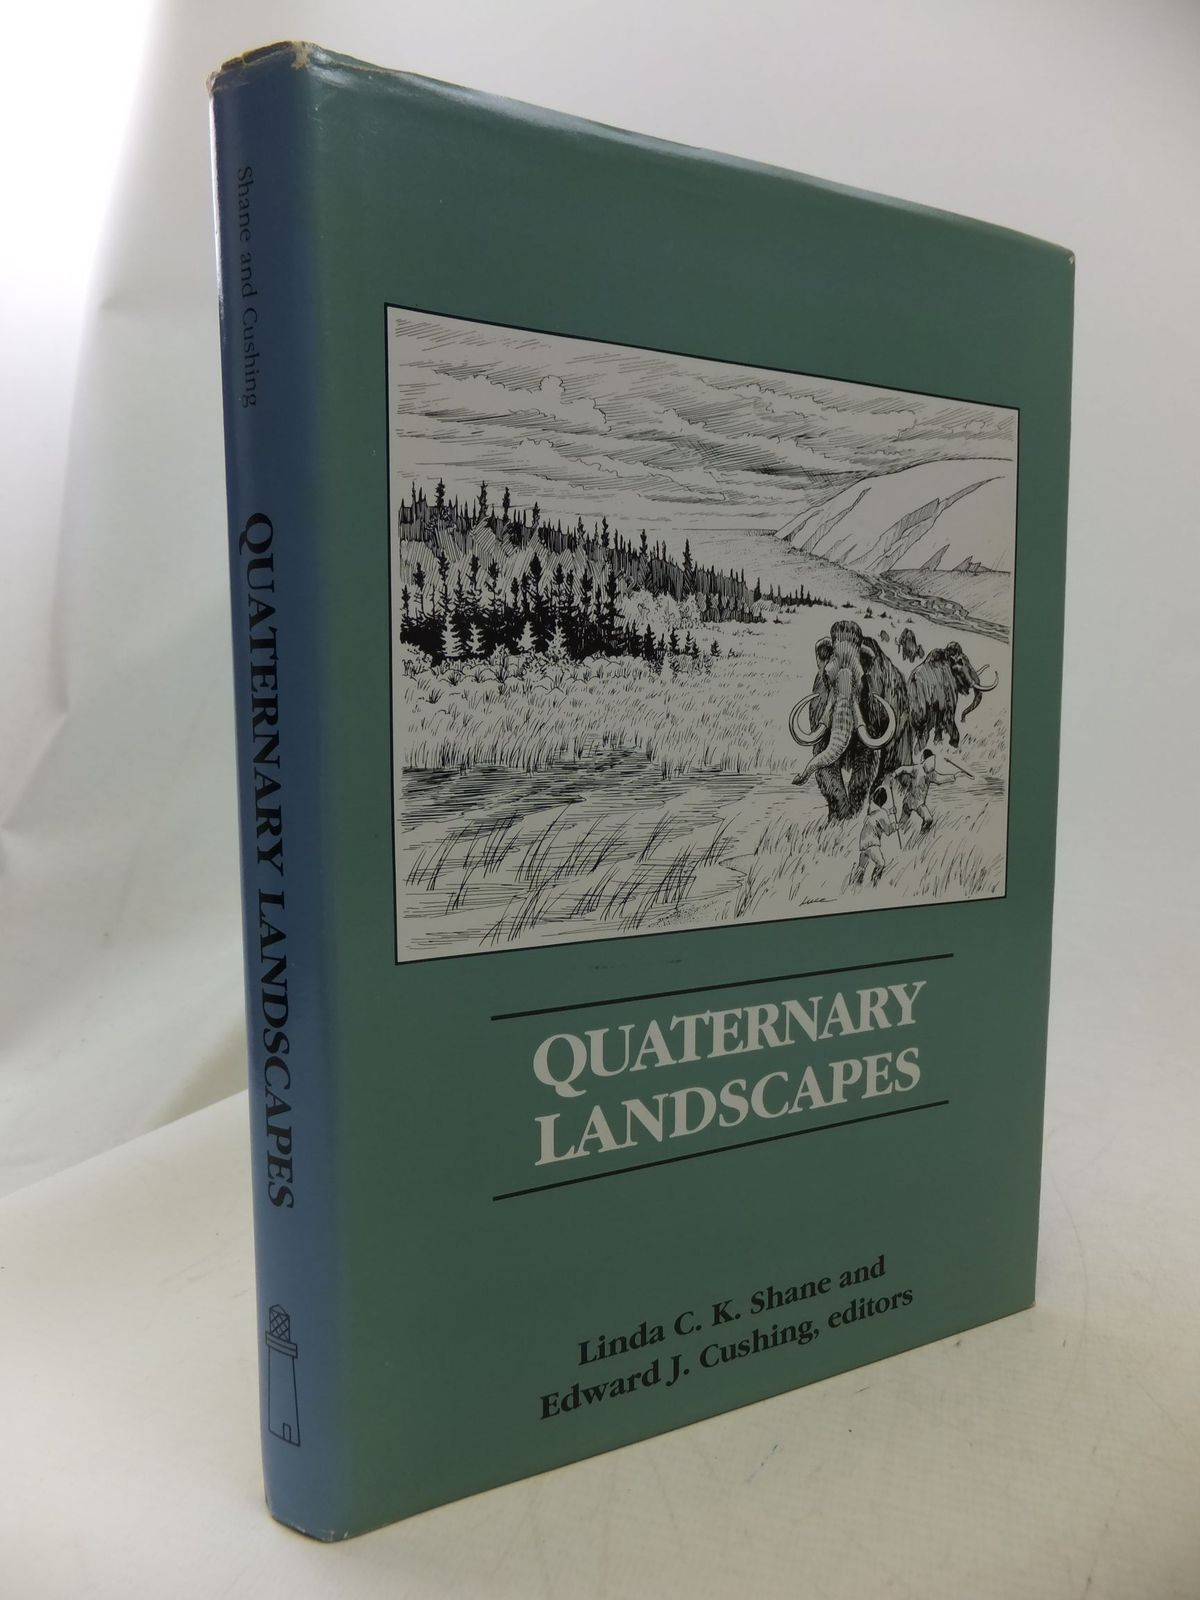 Photo of QUATERNARY LANDSCAPES written by Shane, Linda C.K.<br />Cushing, Edward J. published by Belhaven Press (STOCK CODE: 1710855)  for sale by Stella & Rose's Books